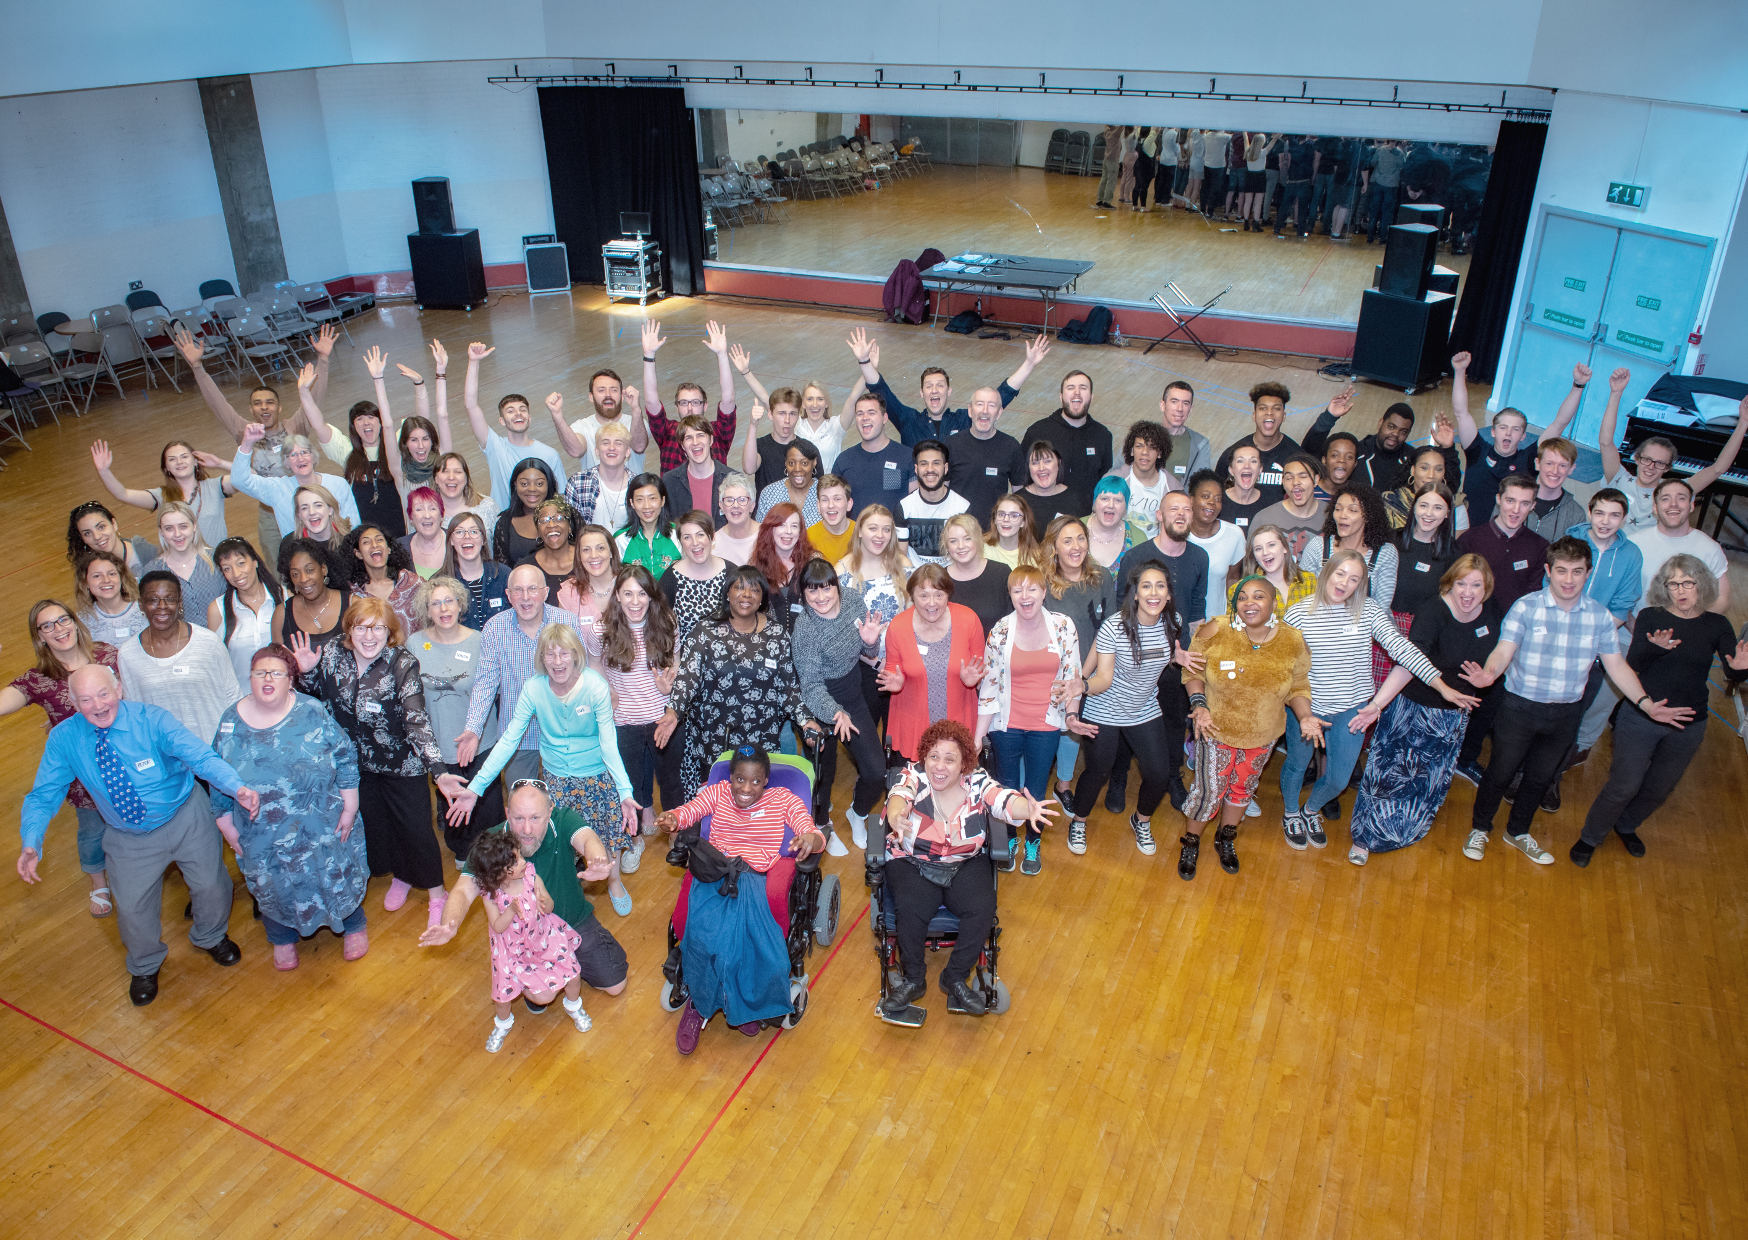 West Yorkshire Playhouse searches for Leeds' heart in epic community celebration ahead of redevelopment